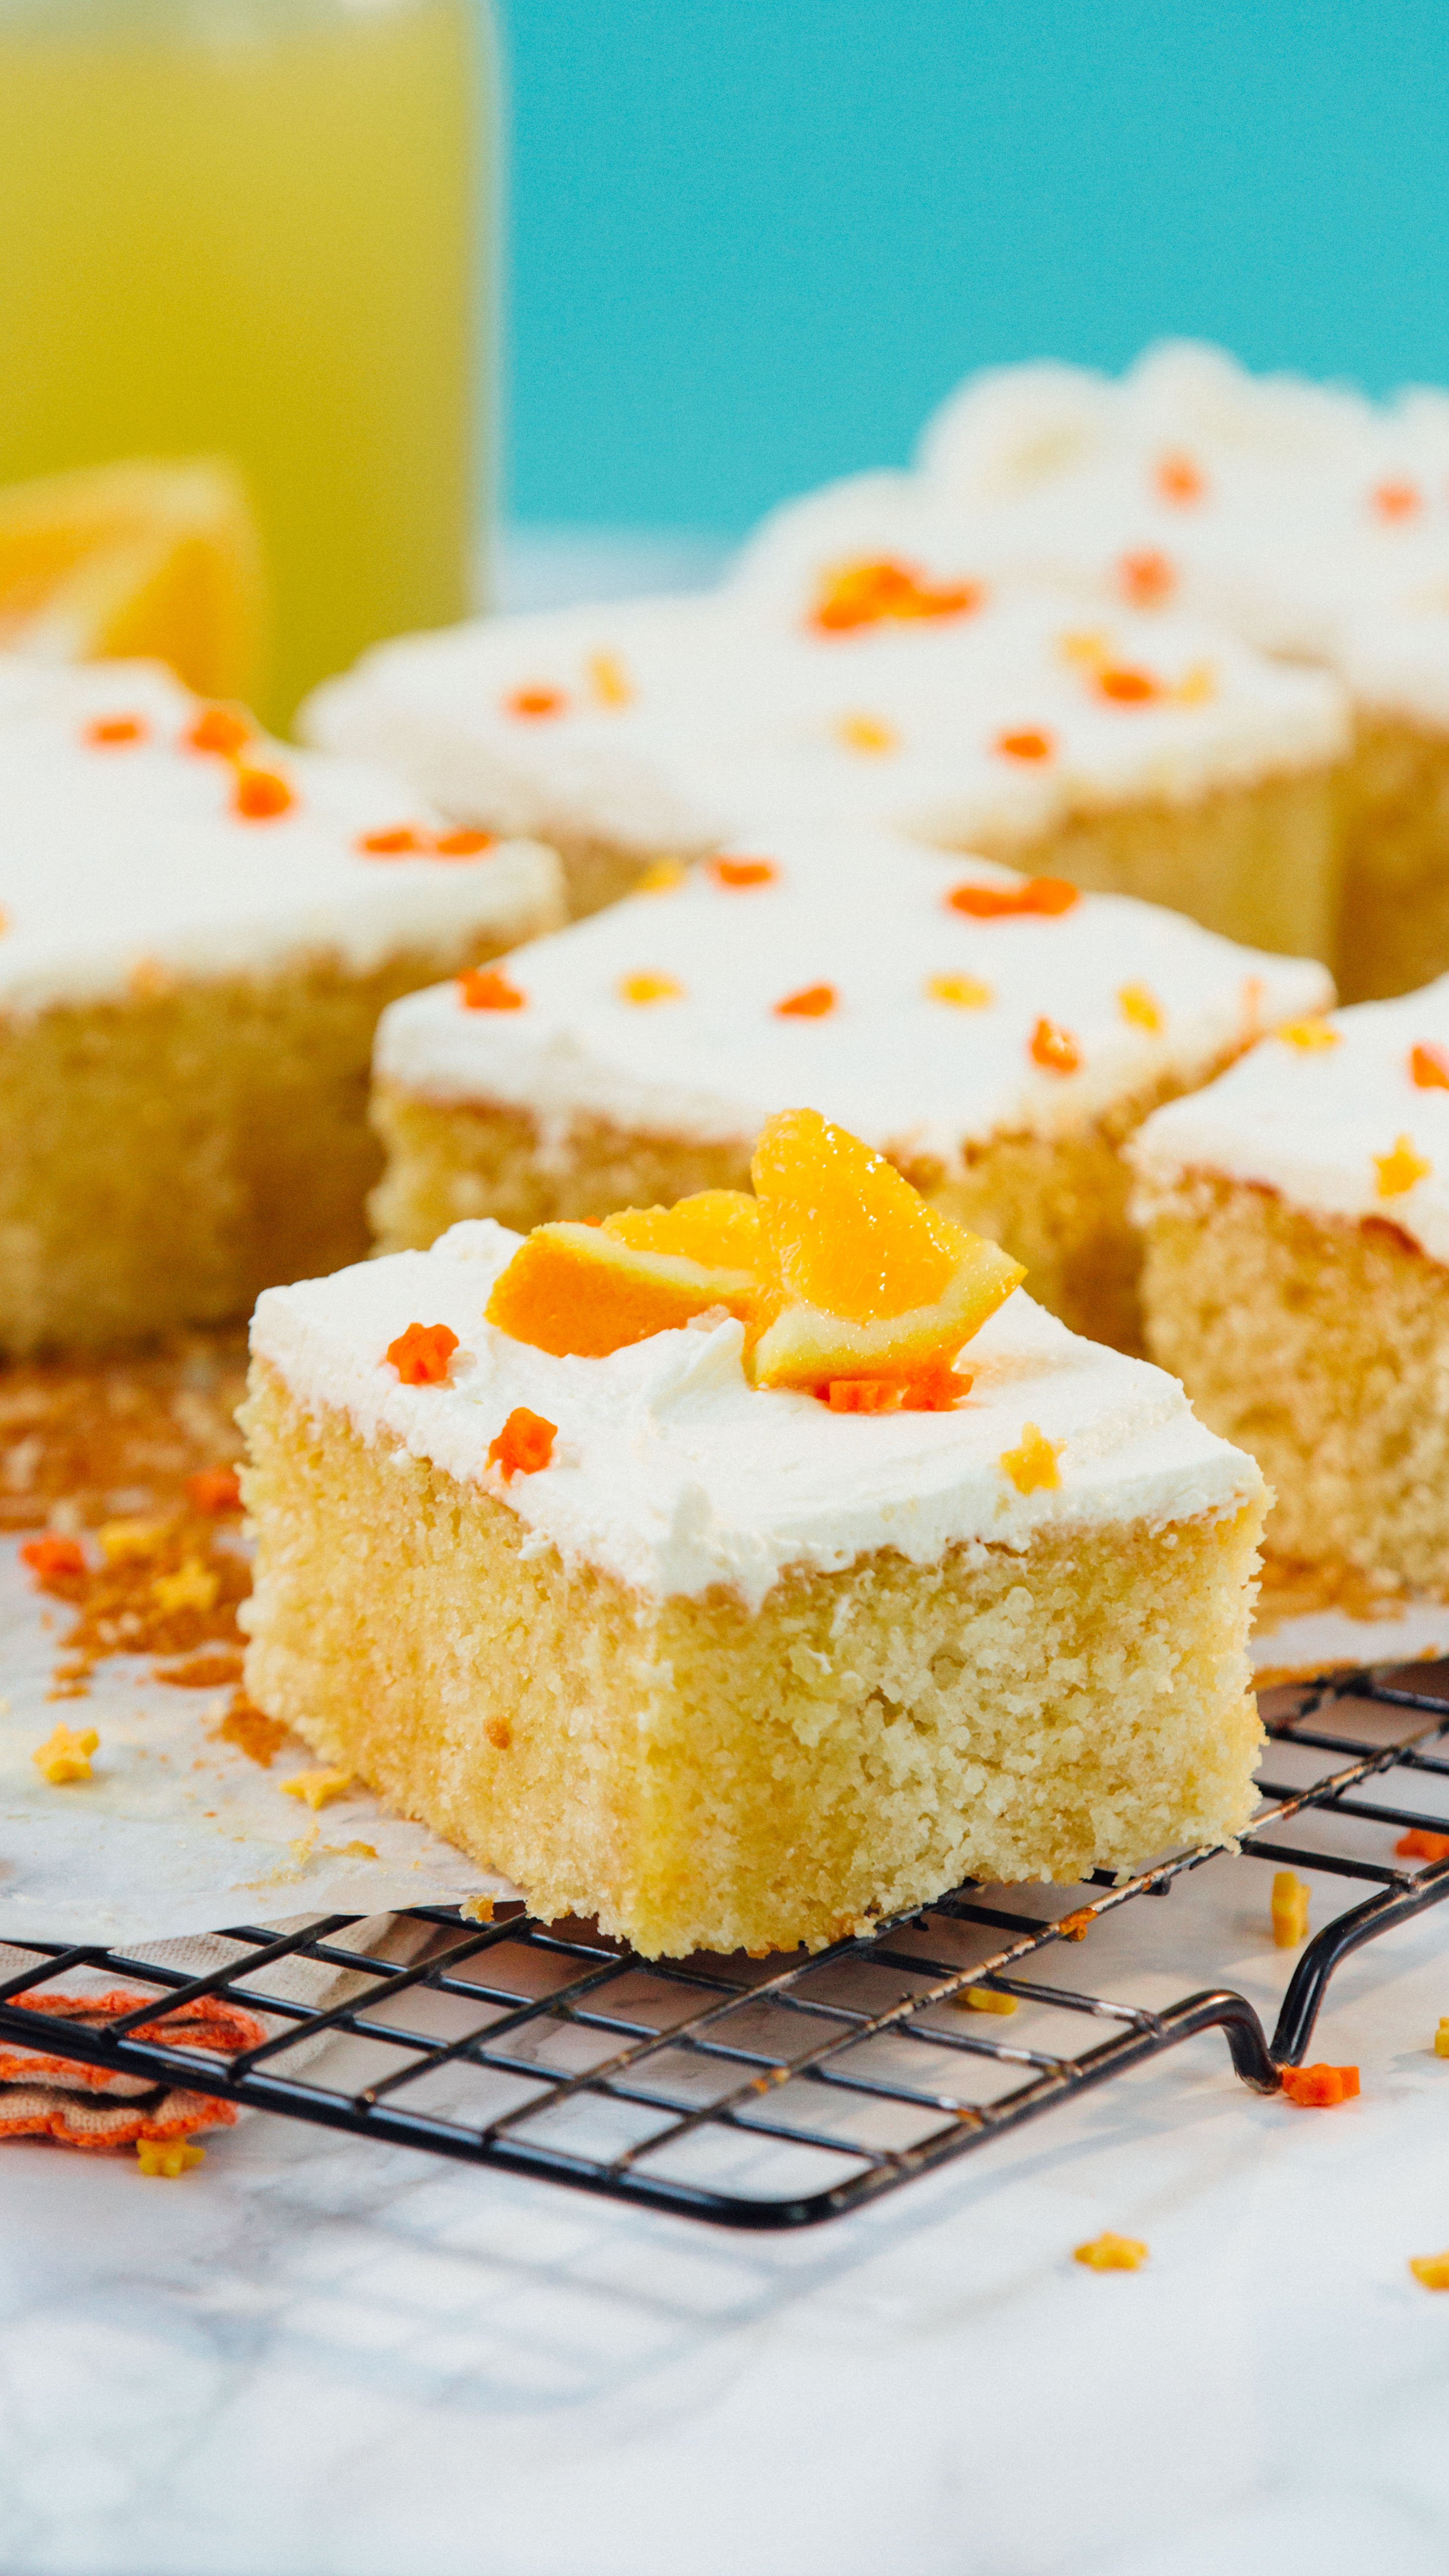 Orange Creamsicle Cake Recipe With Orange Soda